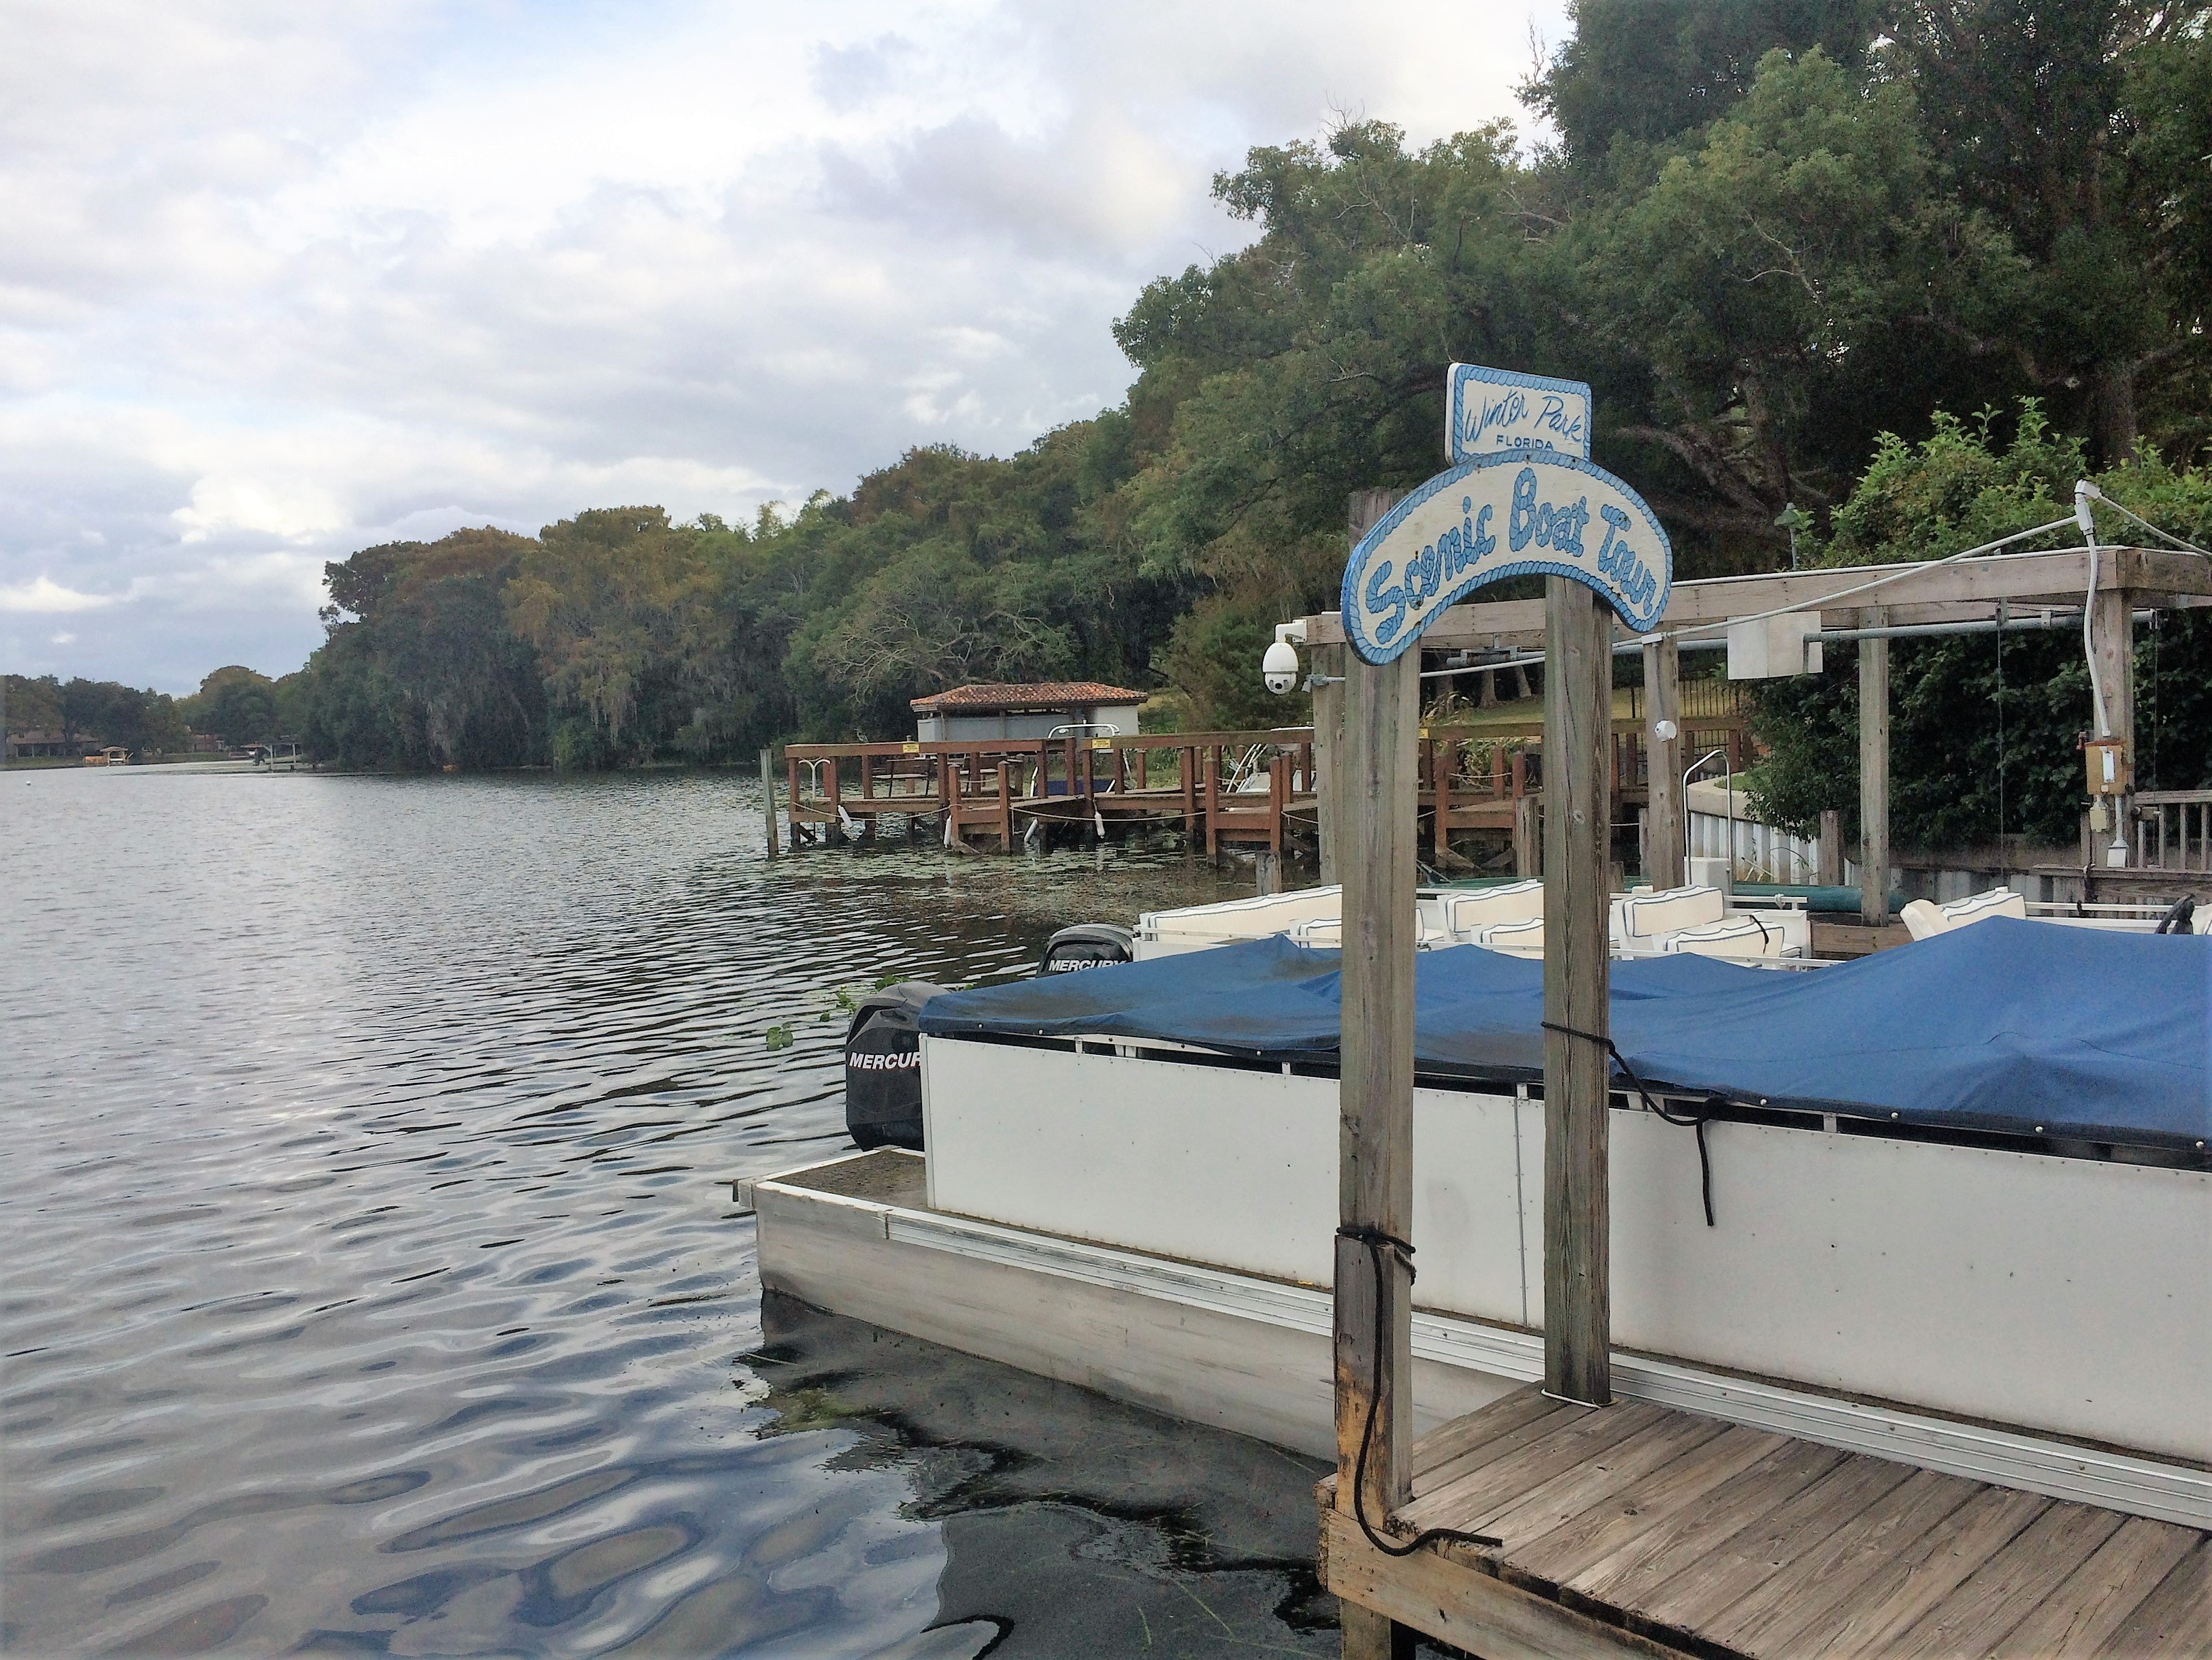 Winter Park Scenic Boat Tours